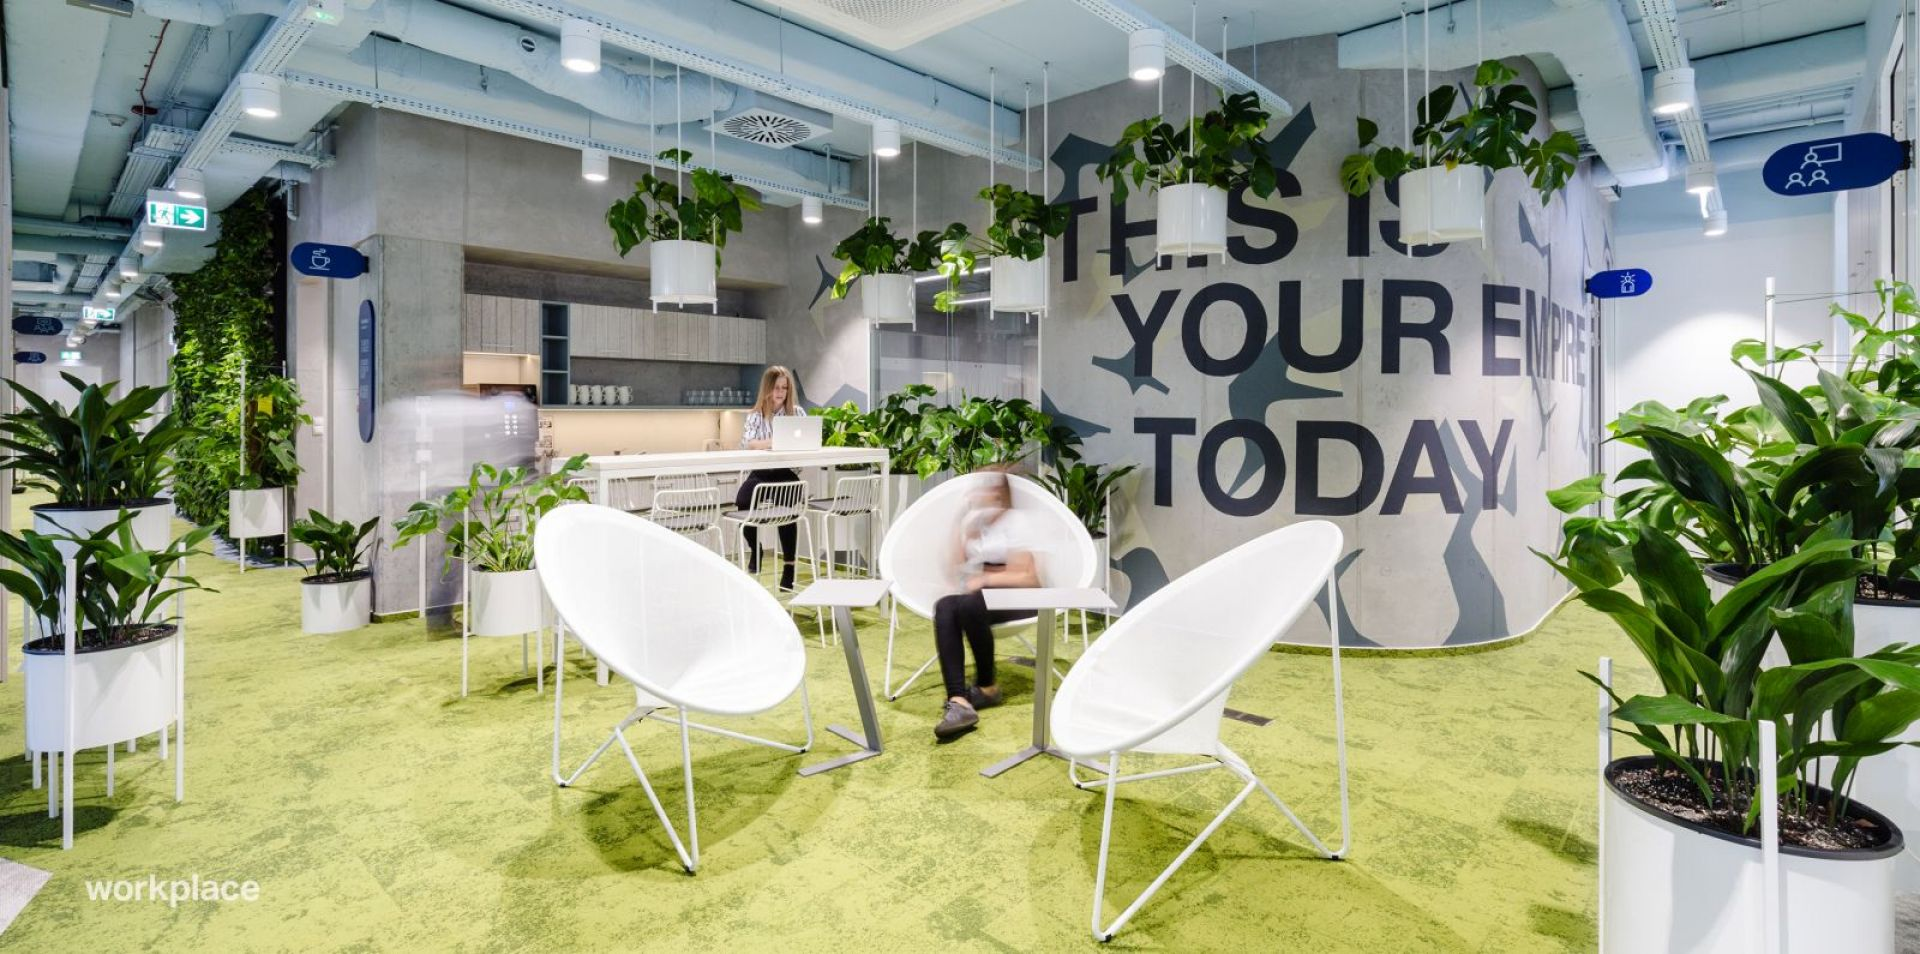 Biuro firmy Nordea. Fot. Workplace Solutions